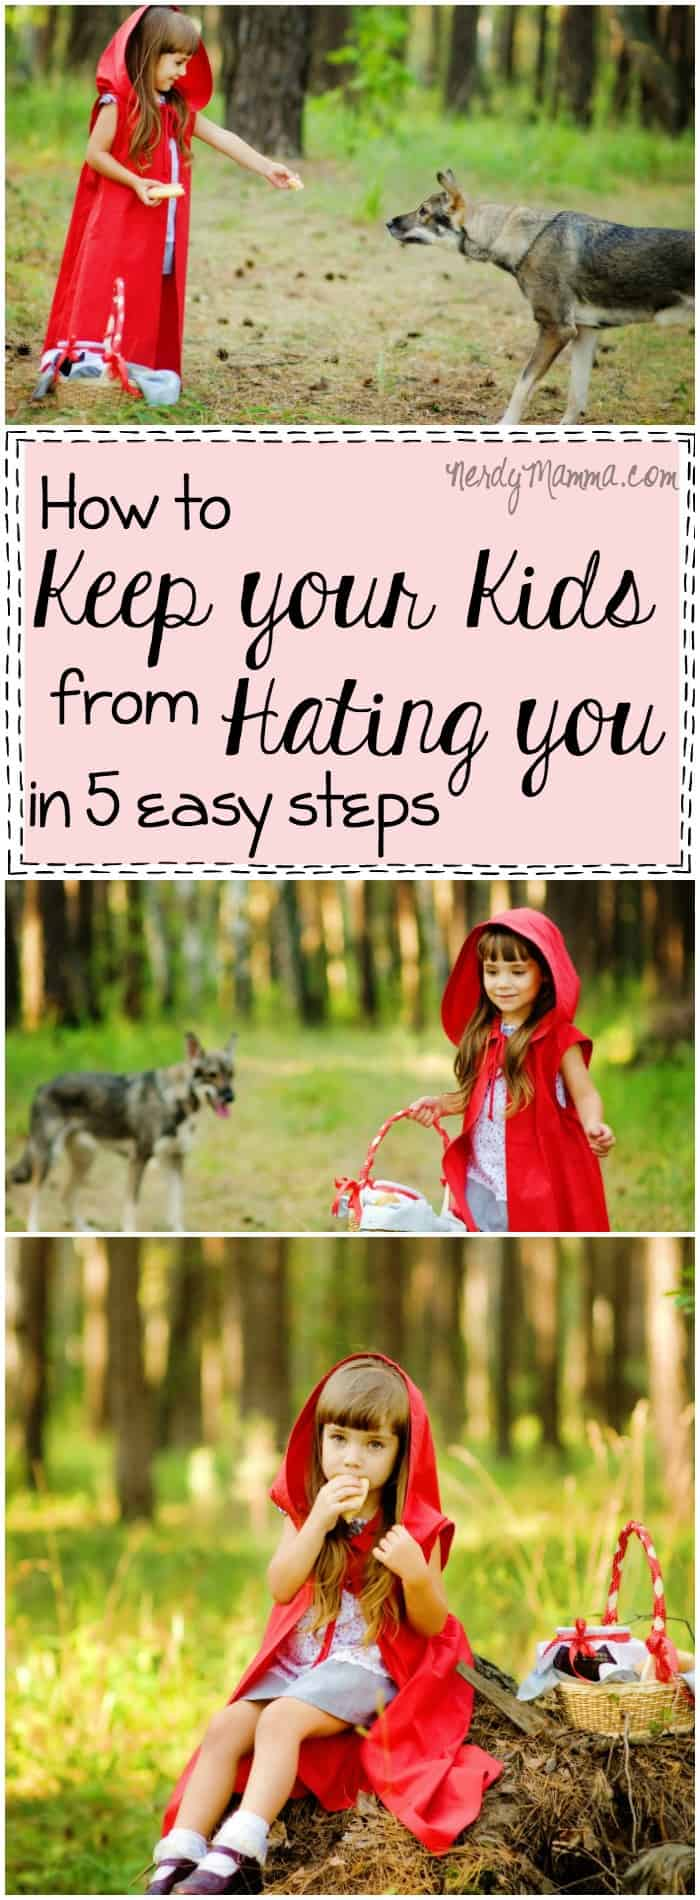 This mom's ideas for how to keep your kids from hating you--so very spot-on. I mean, if I can just keep these in mind...maybe not so many fights with my teen.